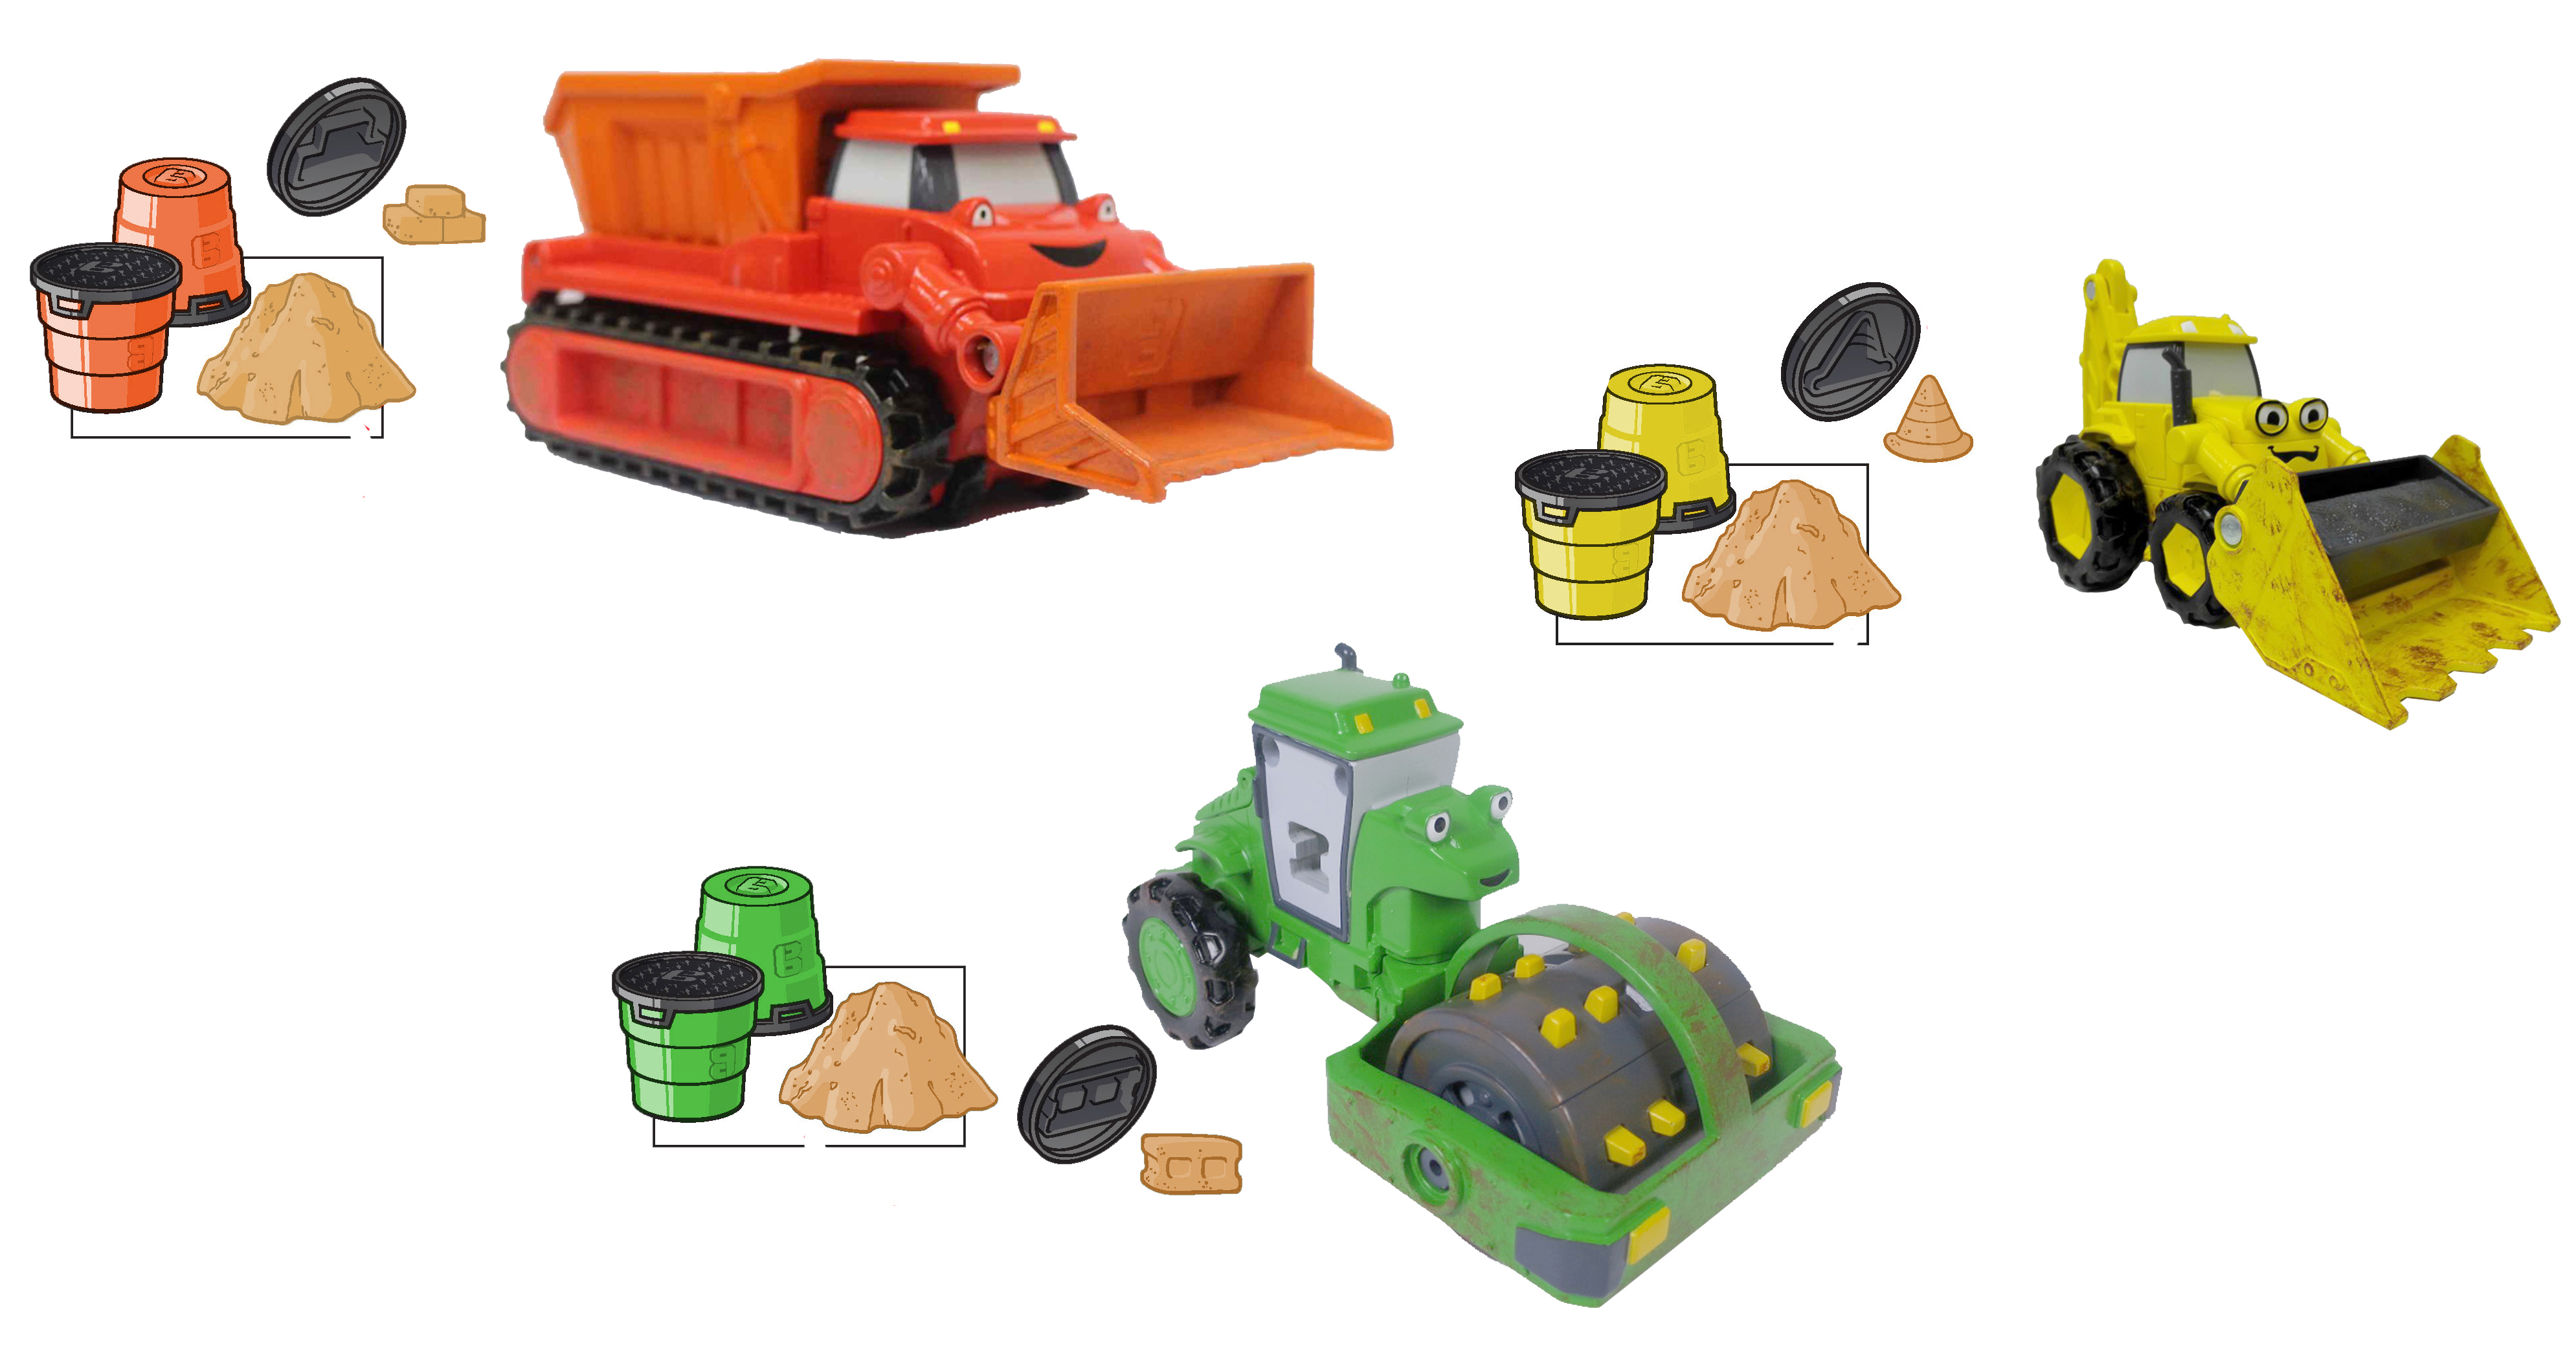 Mattel Debuts New Bob the Builder Toy Line at Toy Fair